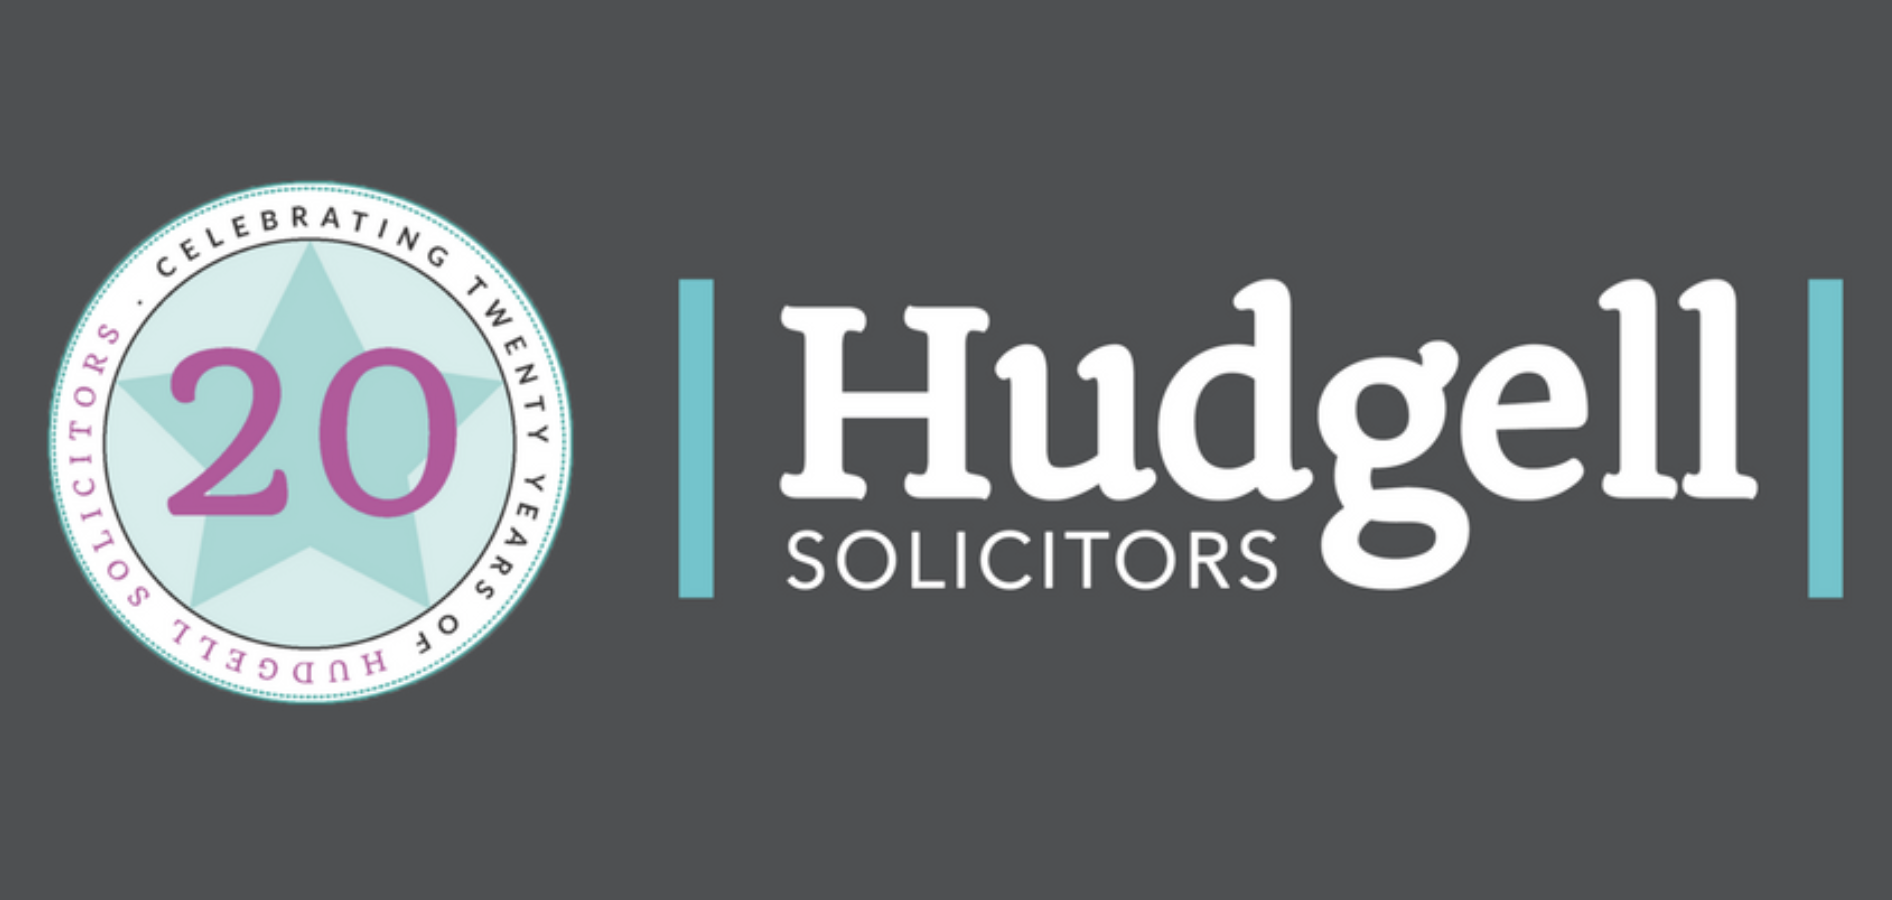 Statement from Hudgell Solicitors, on behalf of victims of Myles Bradbury